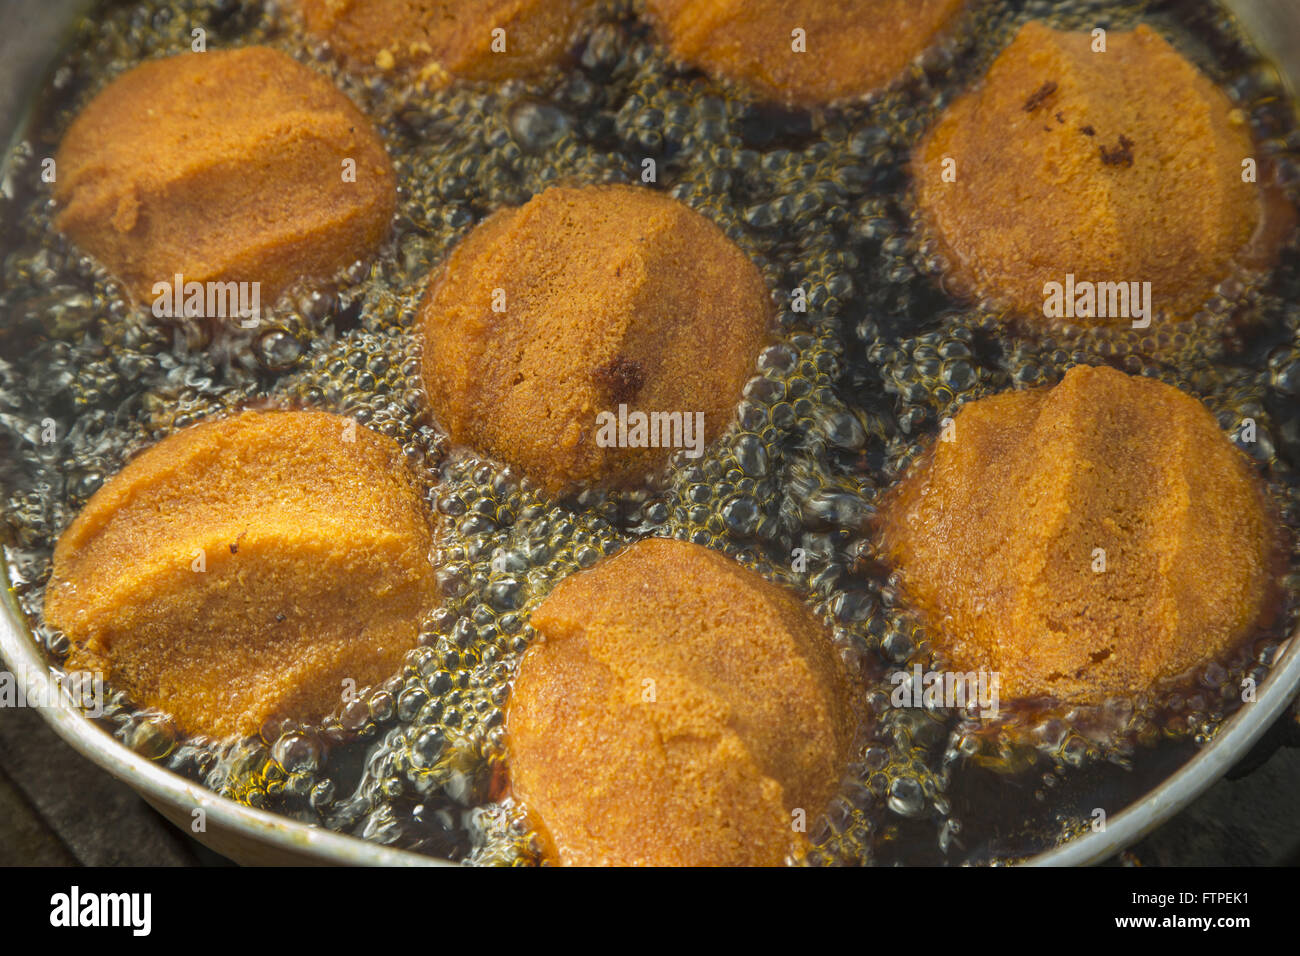 Details acaraje being fried - photographic sequence 5 - Stock Image